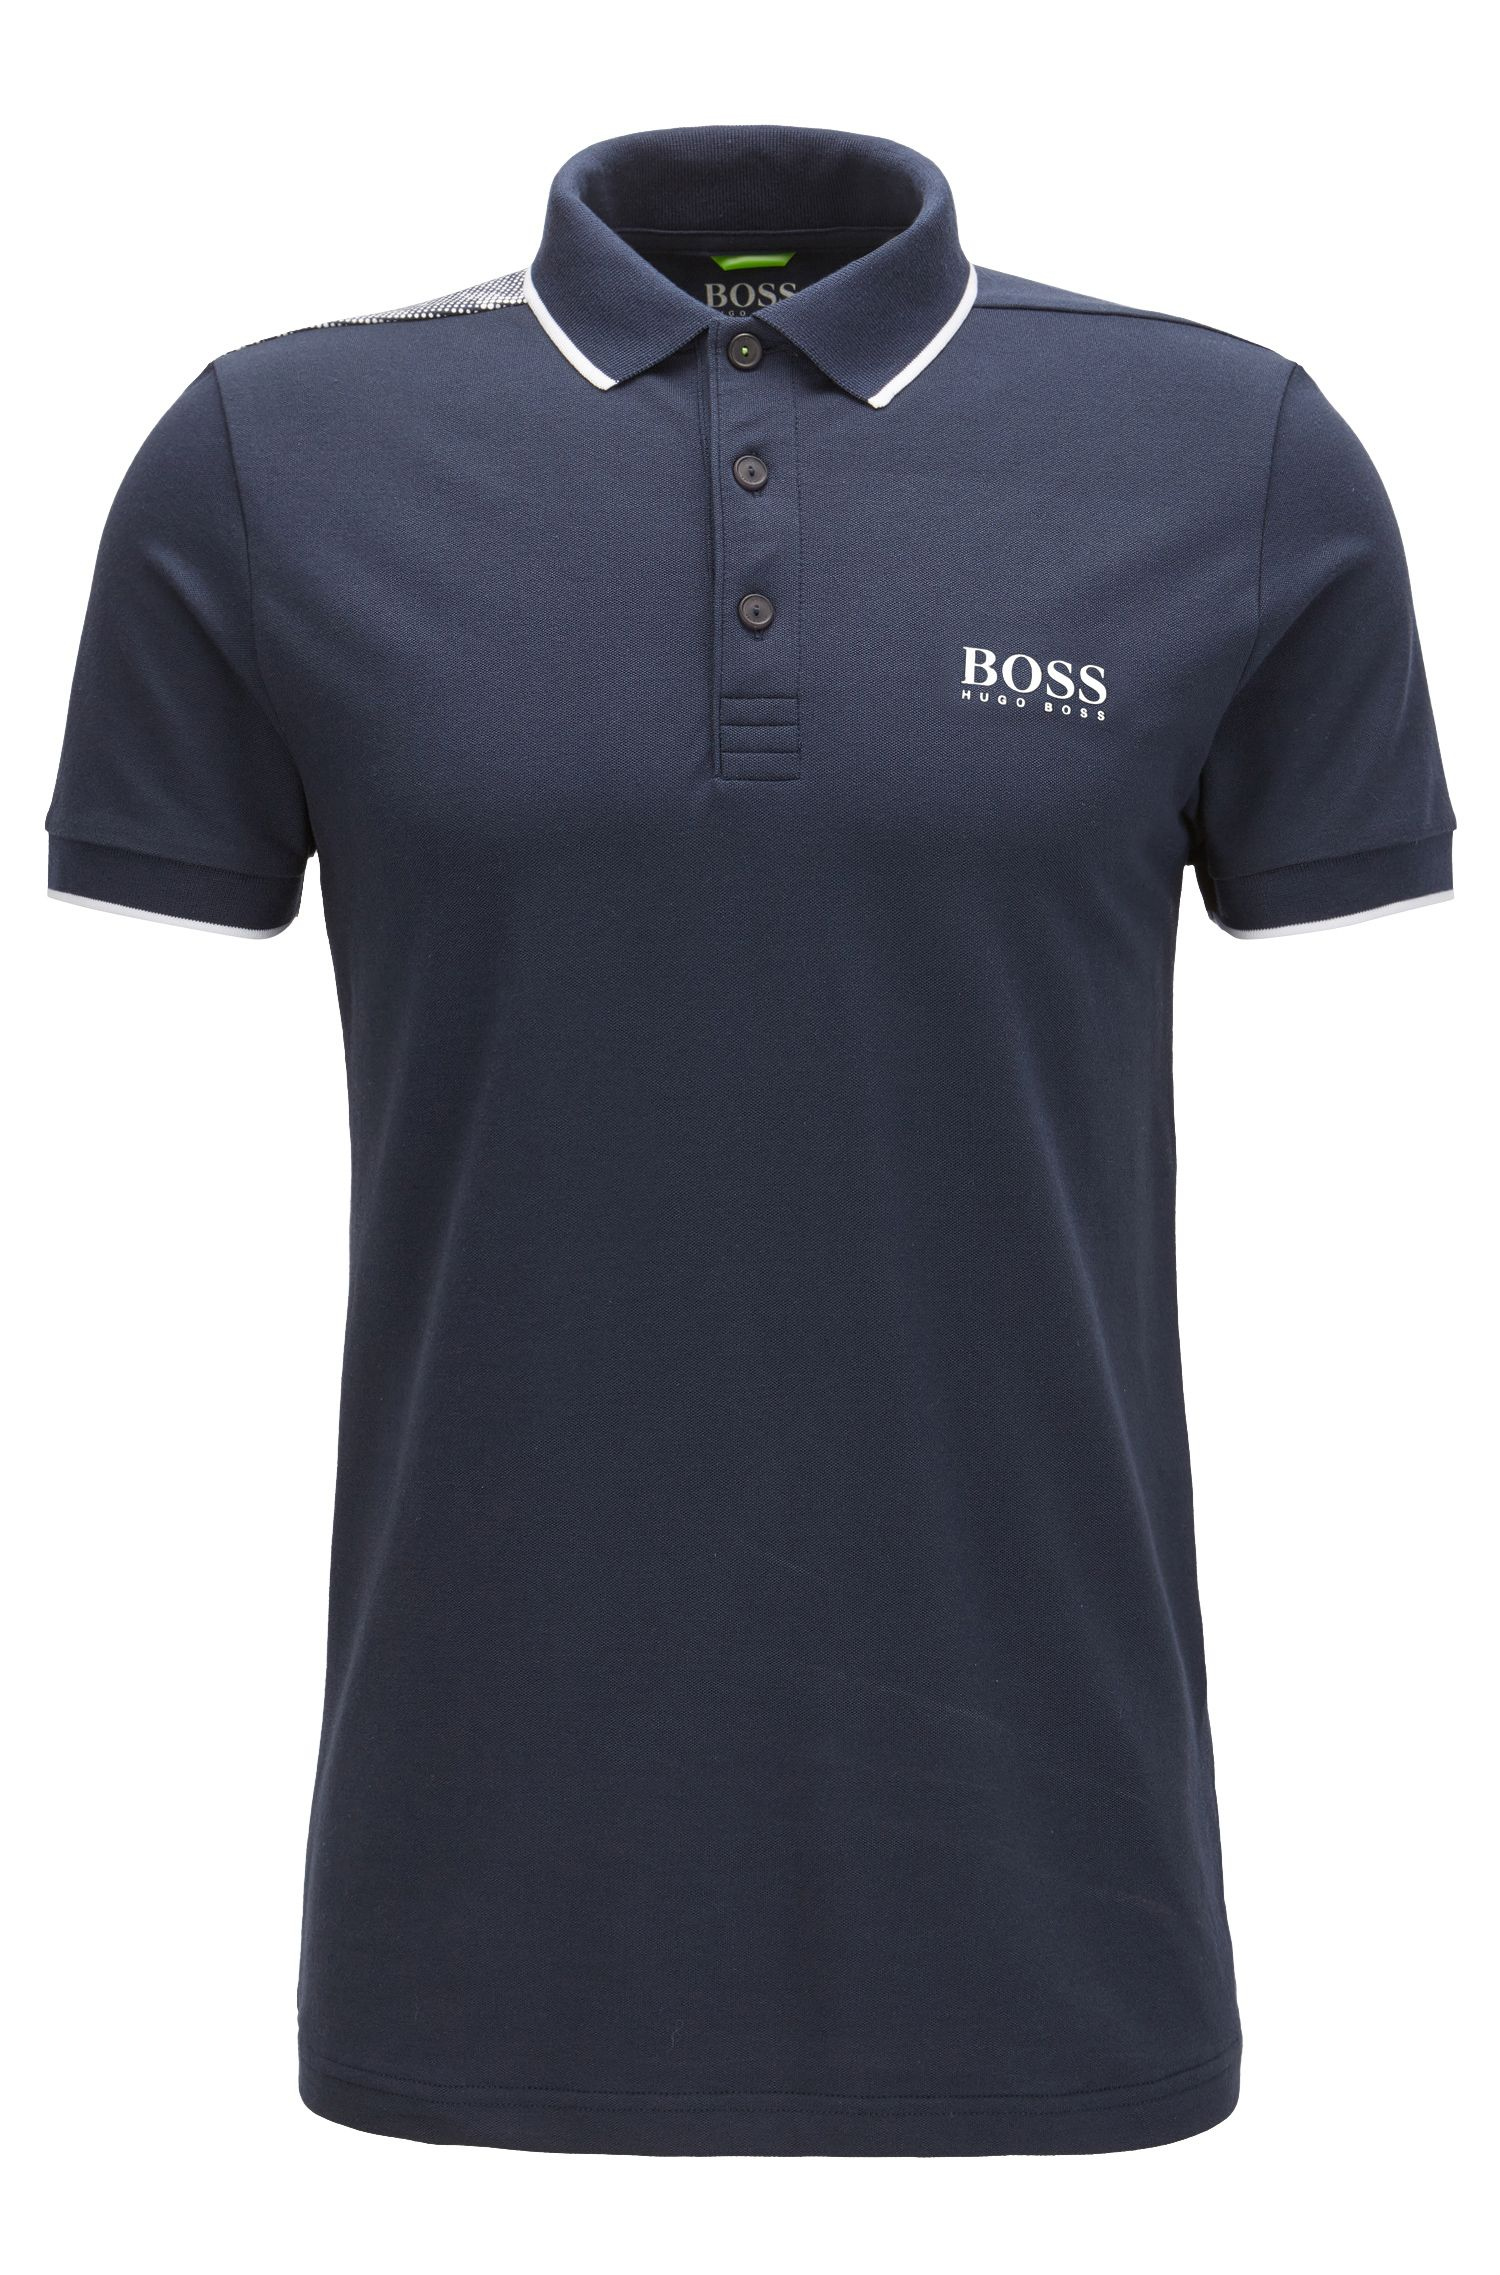 Tipped Cotton Blend  Polo Shirt, Slim Fit | Paul Pro, Dark Blue